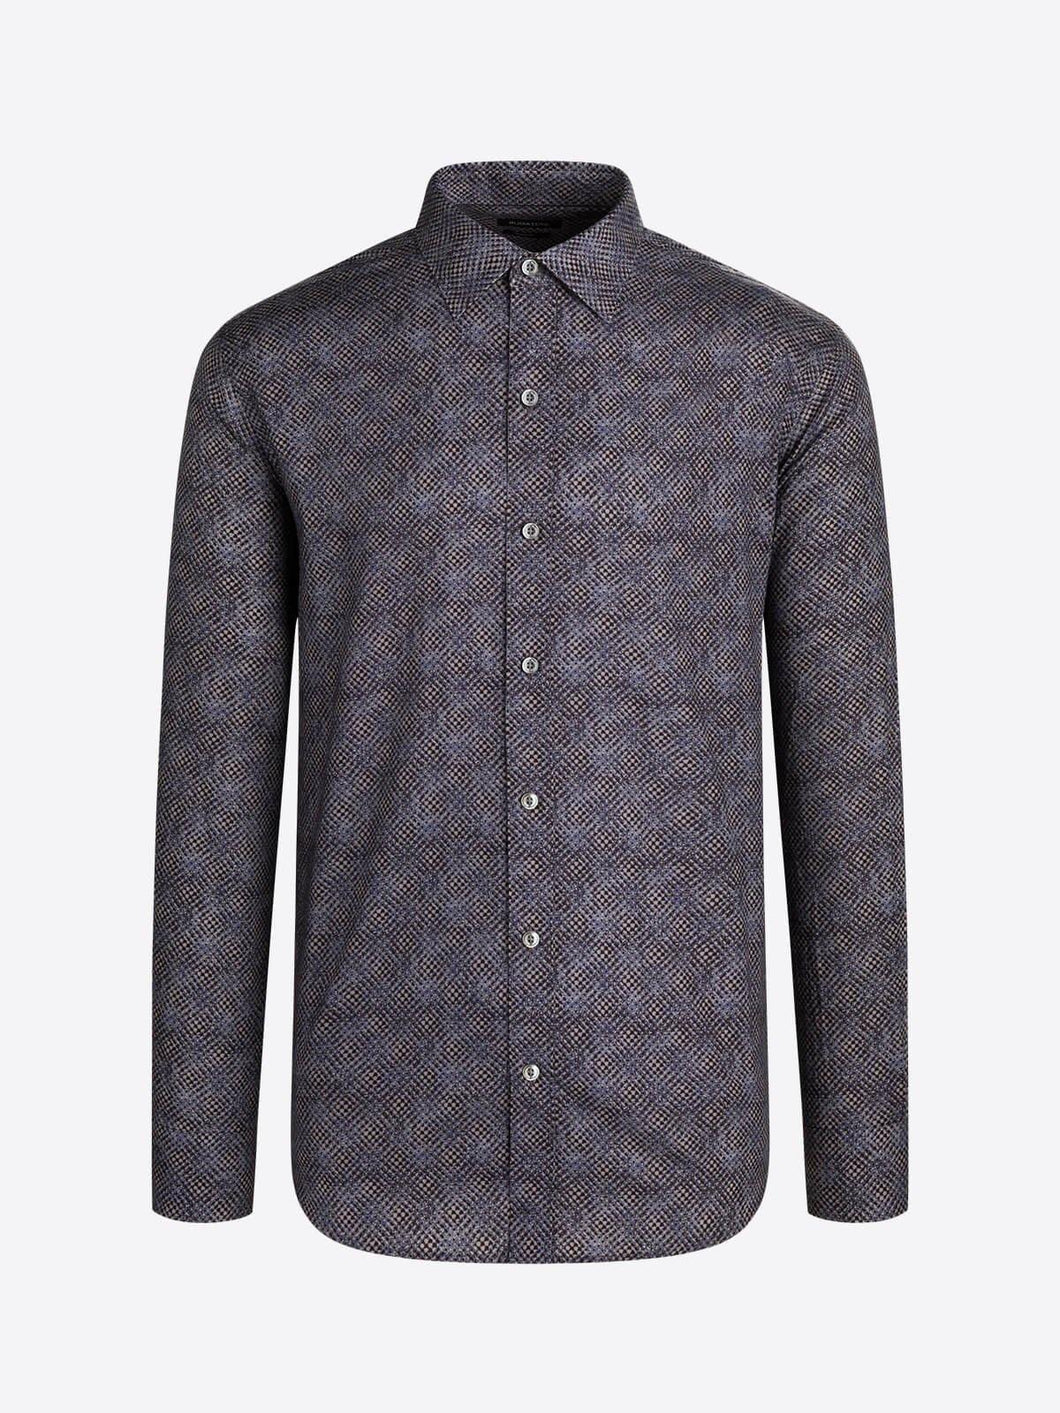 LONG SLEEVE TRELLIS PRINTED COTTON SHIRT